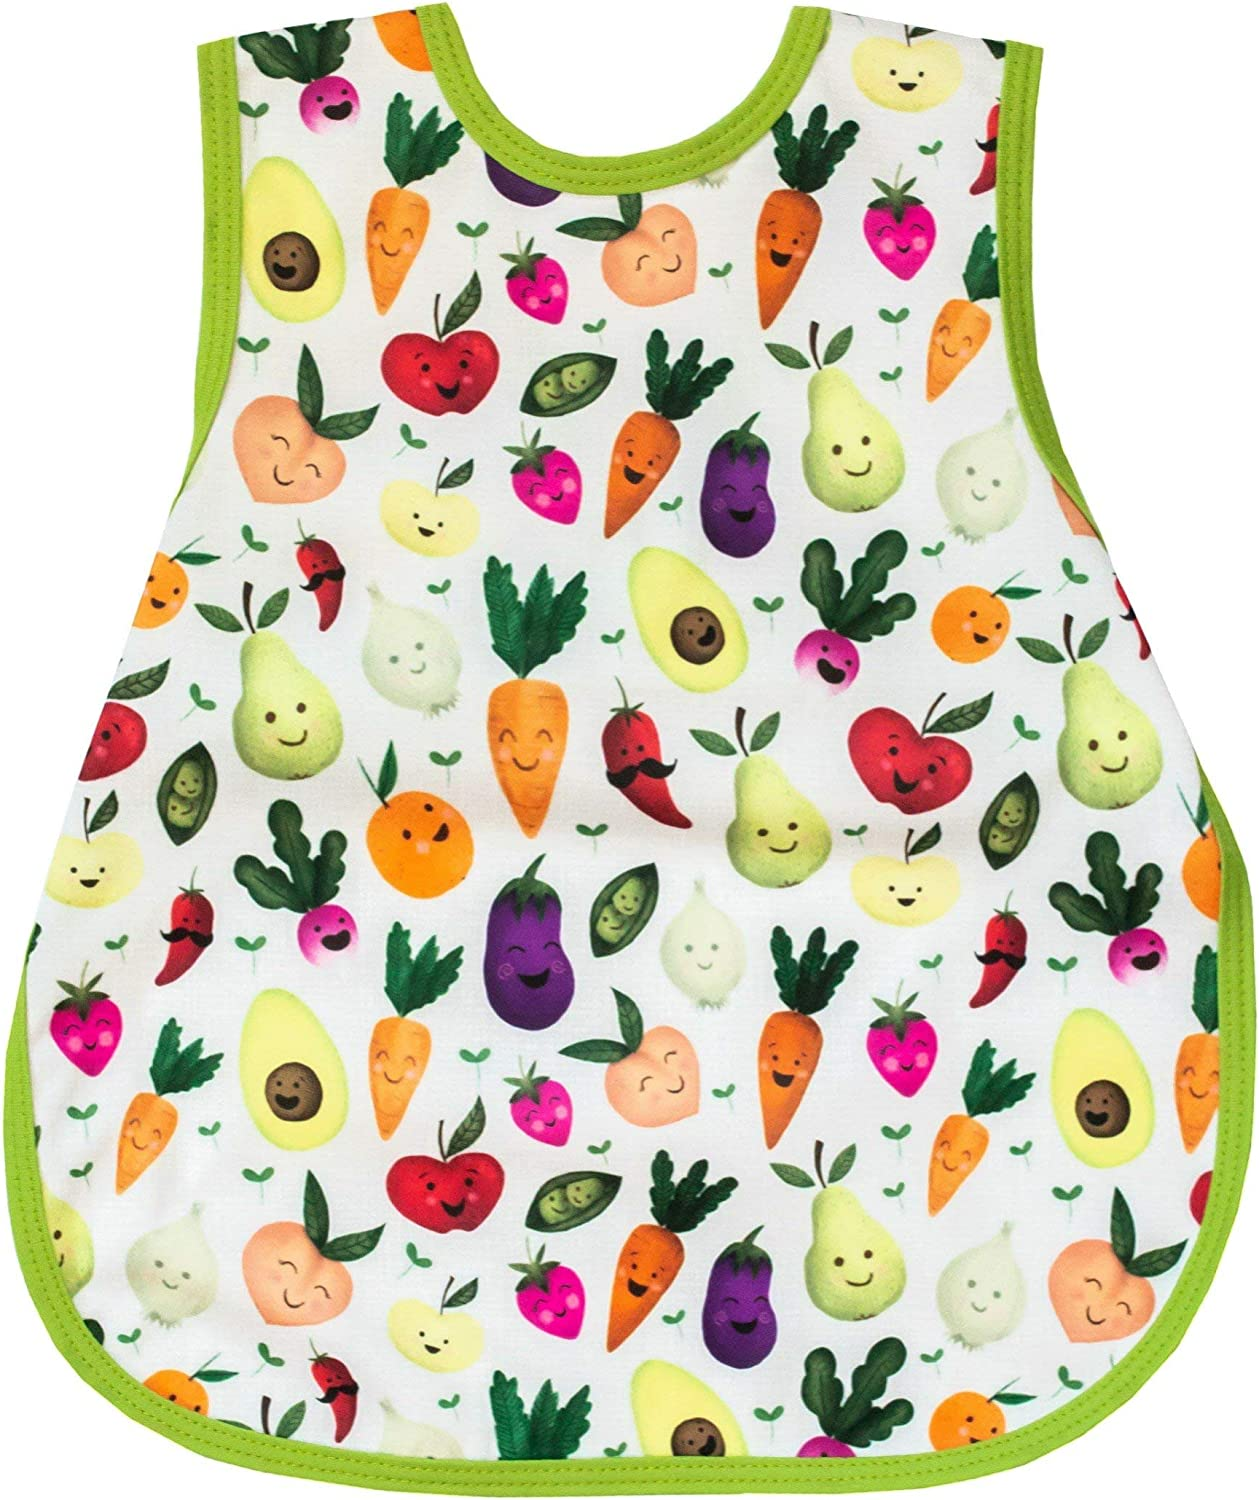 childs apron for meals painting baking craft. baby bib for weaning Fiver Friday Surprise Bapron with pocket option